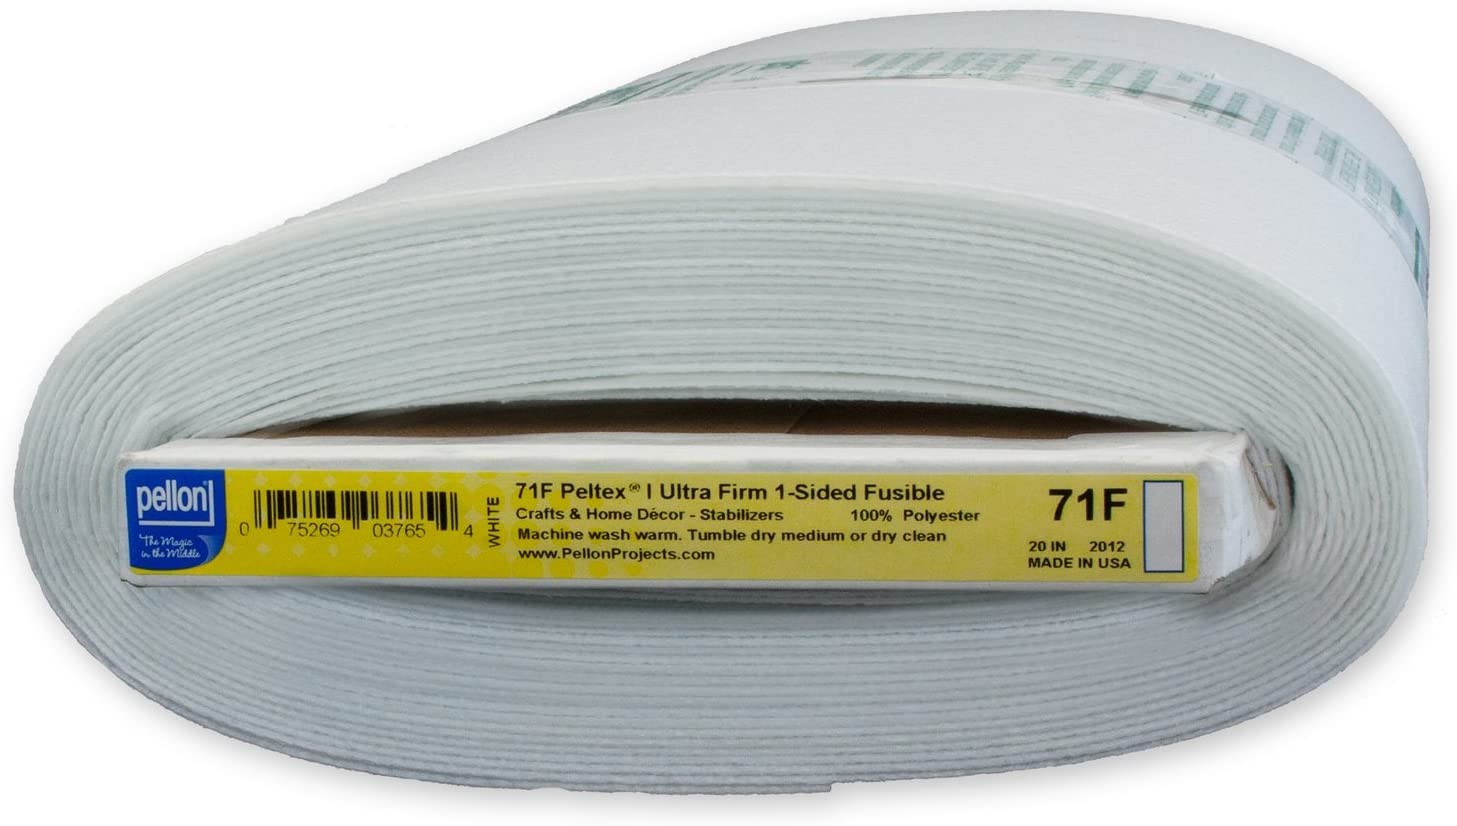 Pellon Peltex One-Sided fusible stabilizer, White